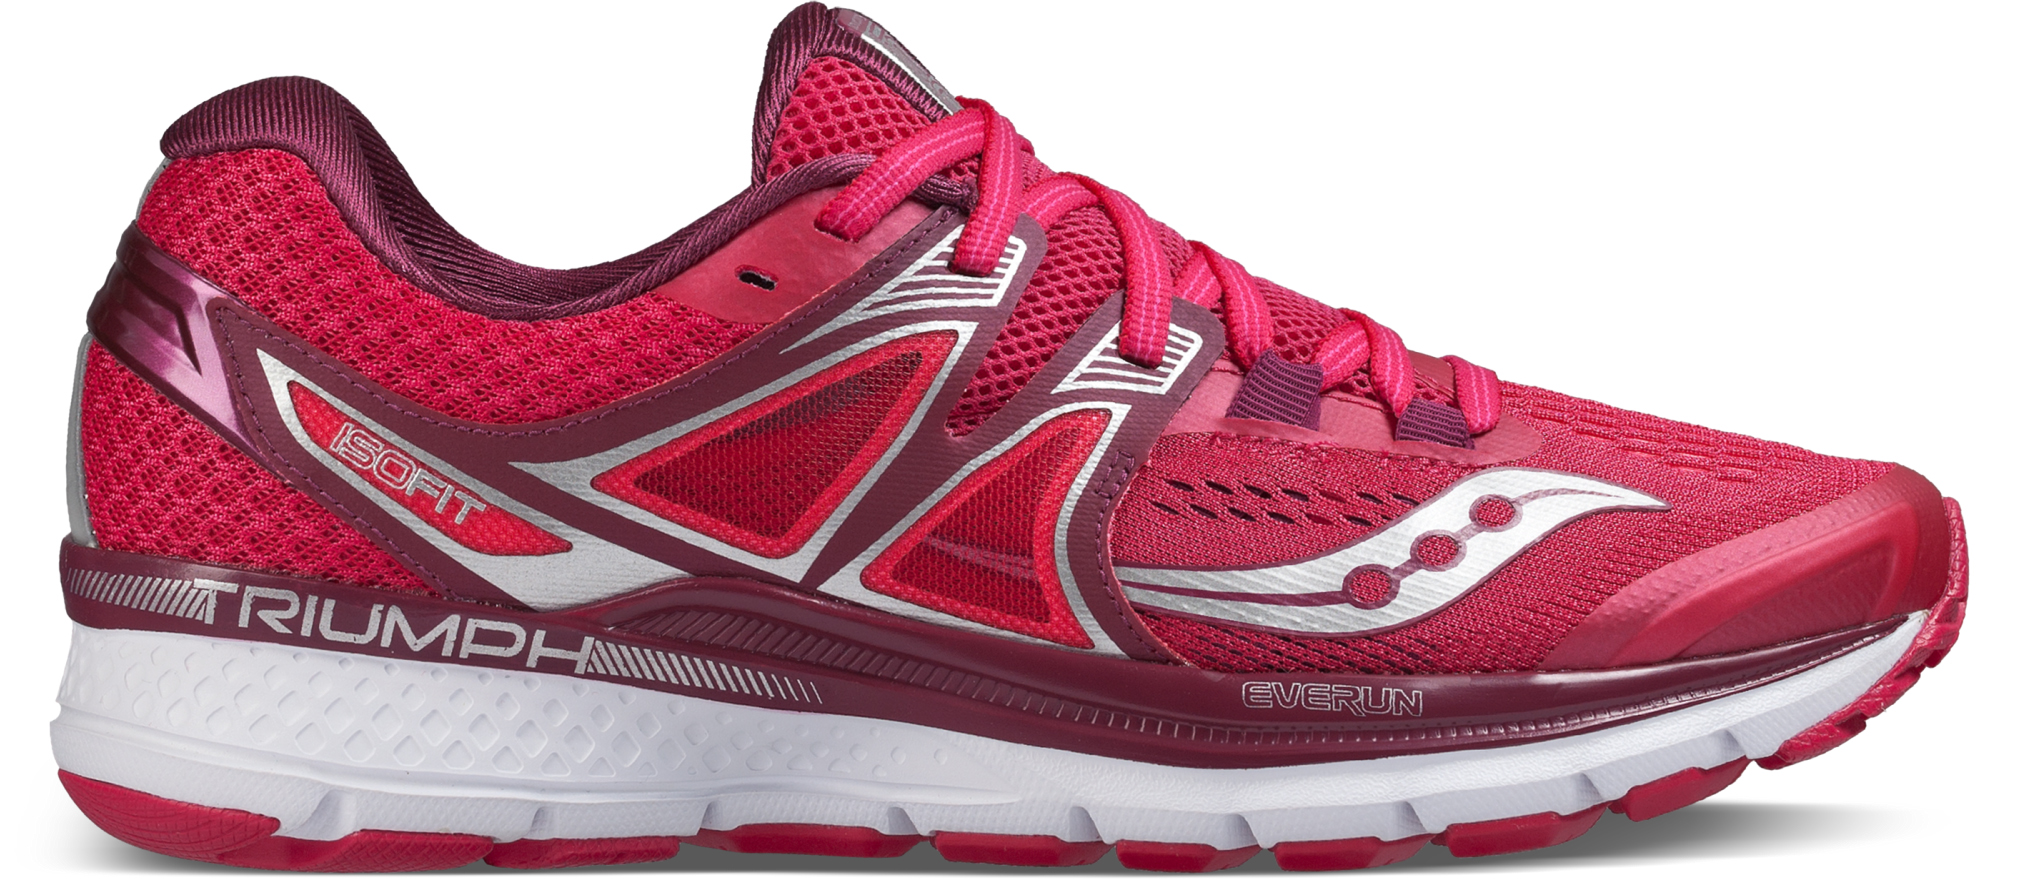 bdd0ff86d54f Saucony Women s Triumph ISO 3 - The Lincolnshire Runner  Specialist ...